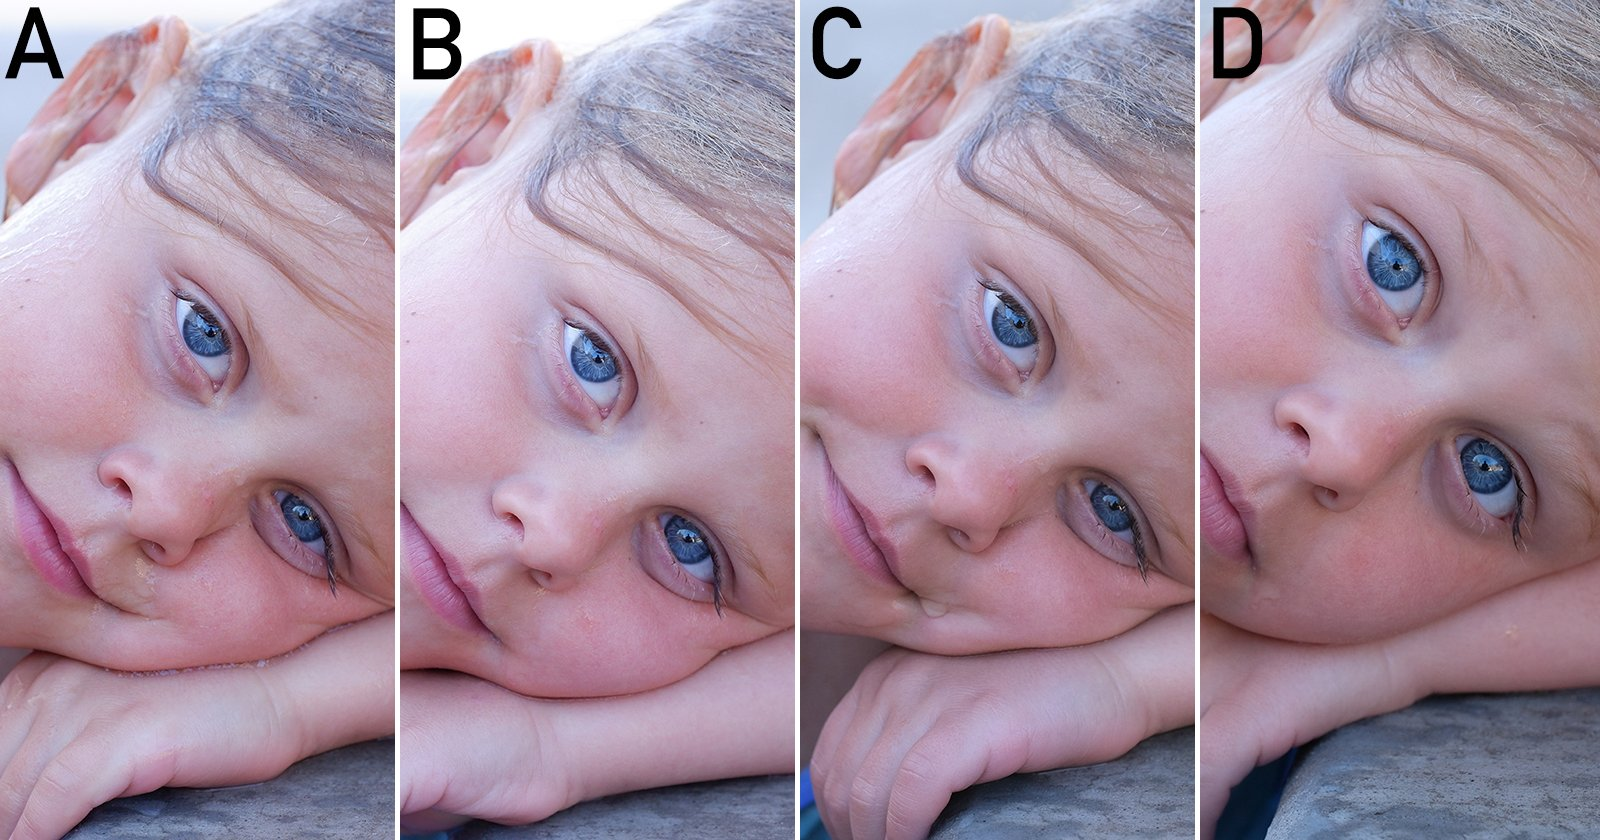 Blind Test: Fujifilm X-Trans vs Bayer Filter, Which is Better? - PetaPixel